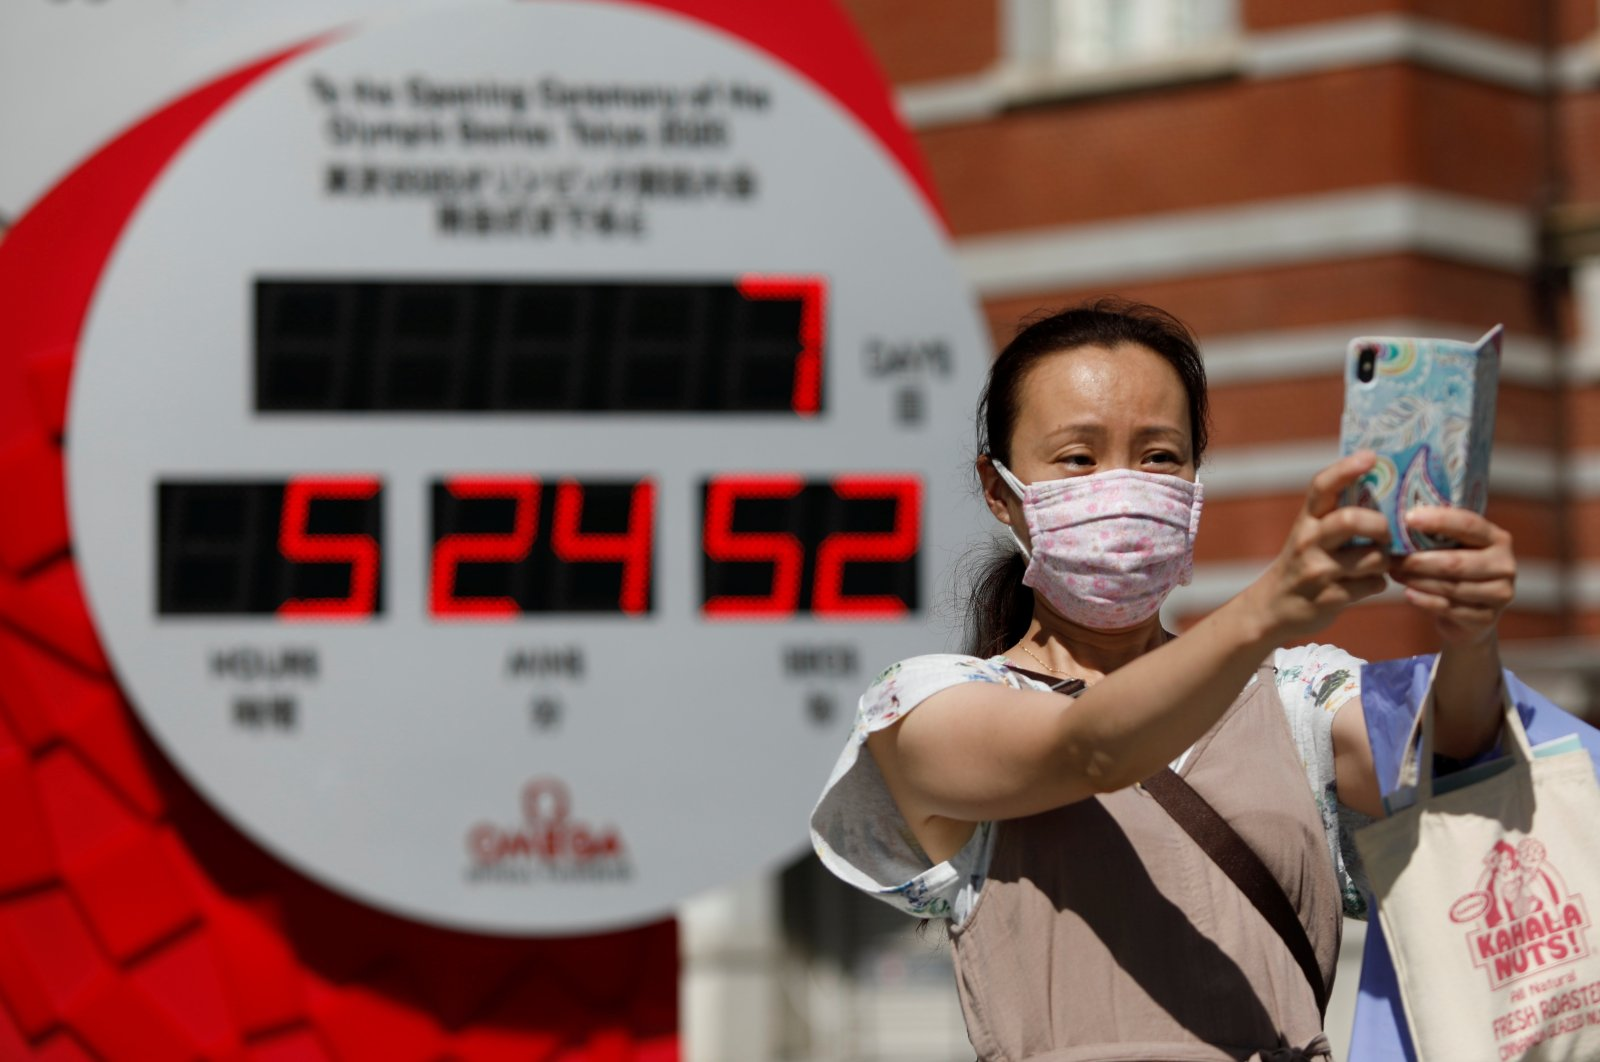 A woman takes a selfie in front of a Tokyo 2020 Olympic Games countdown clock in Tokyo, Japan, July 16, 2021. (Reuters Photo)